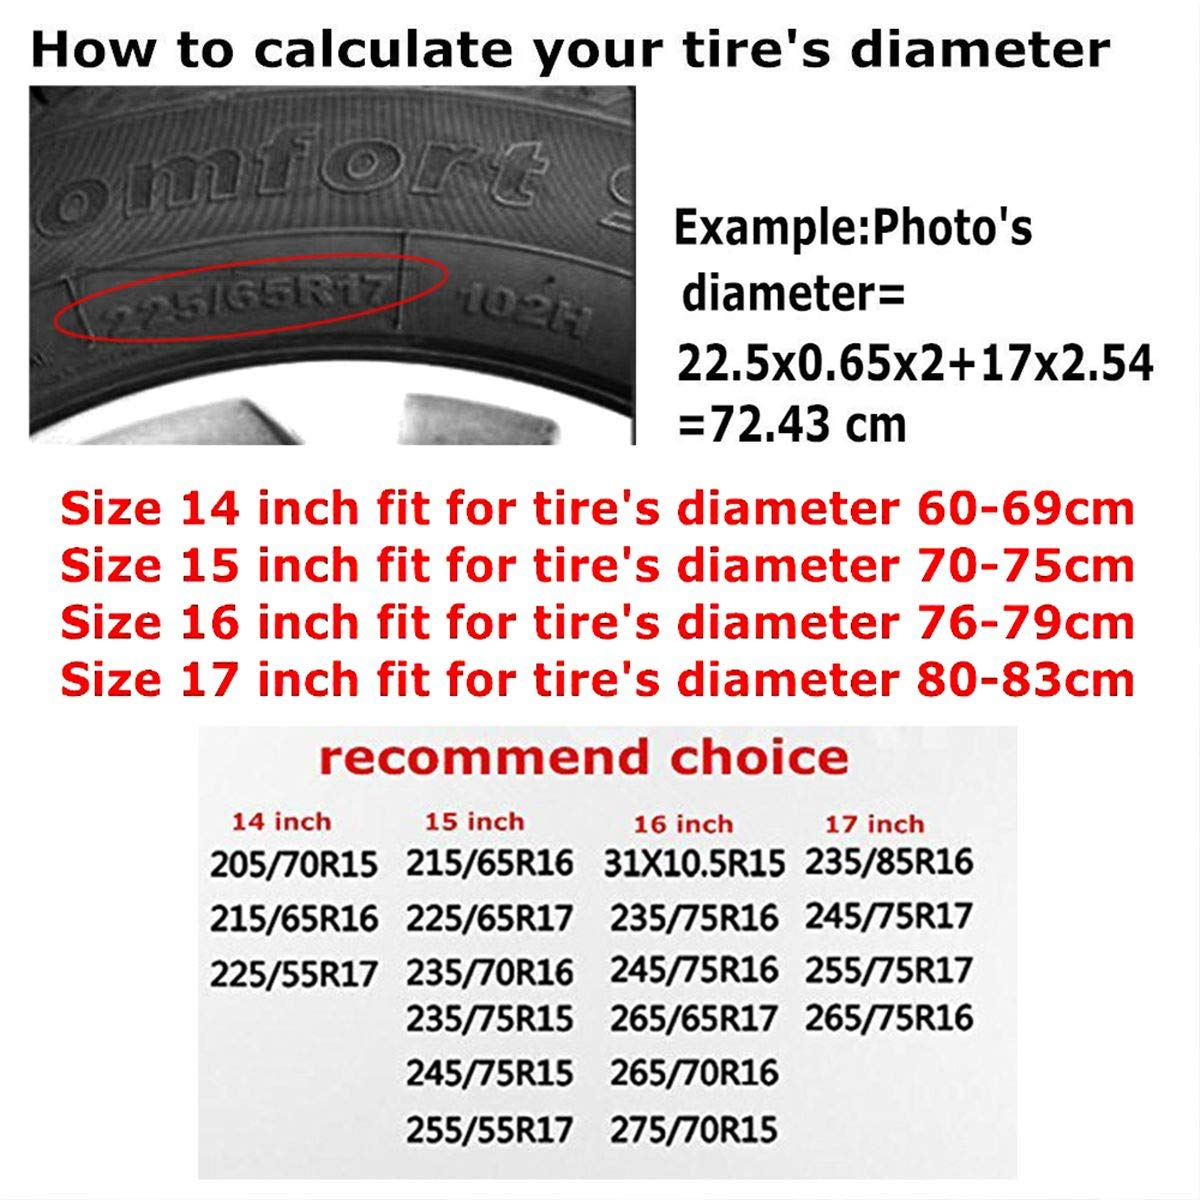 NTQFY Bass Fish Jumping Hook Tire Covers Portable Eco-Friendly Spare Wheel Cover Waterproof Universal Tire Protectors for Truck SUV Trailer Camper RV